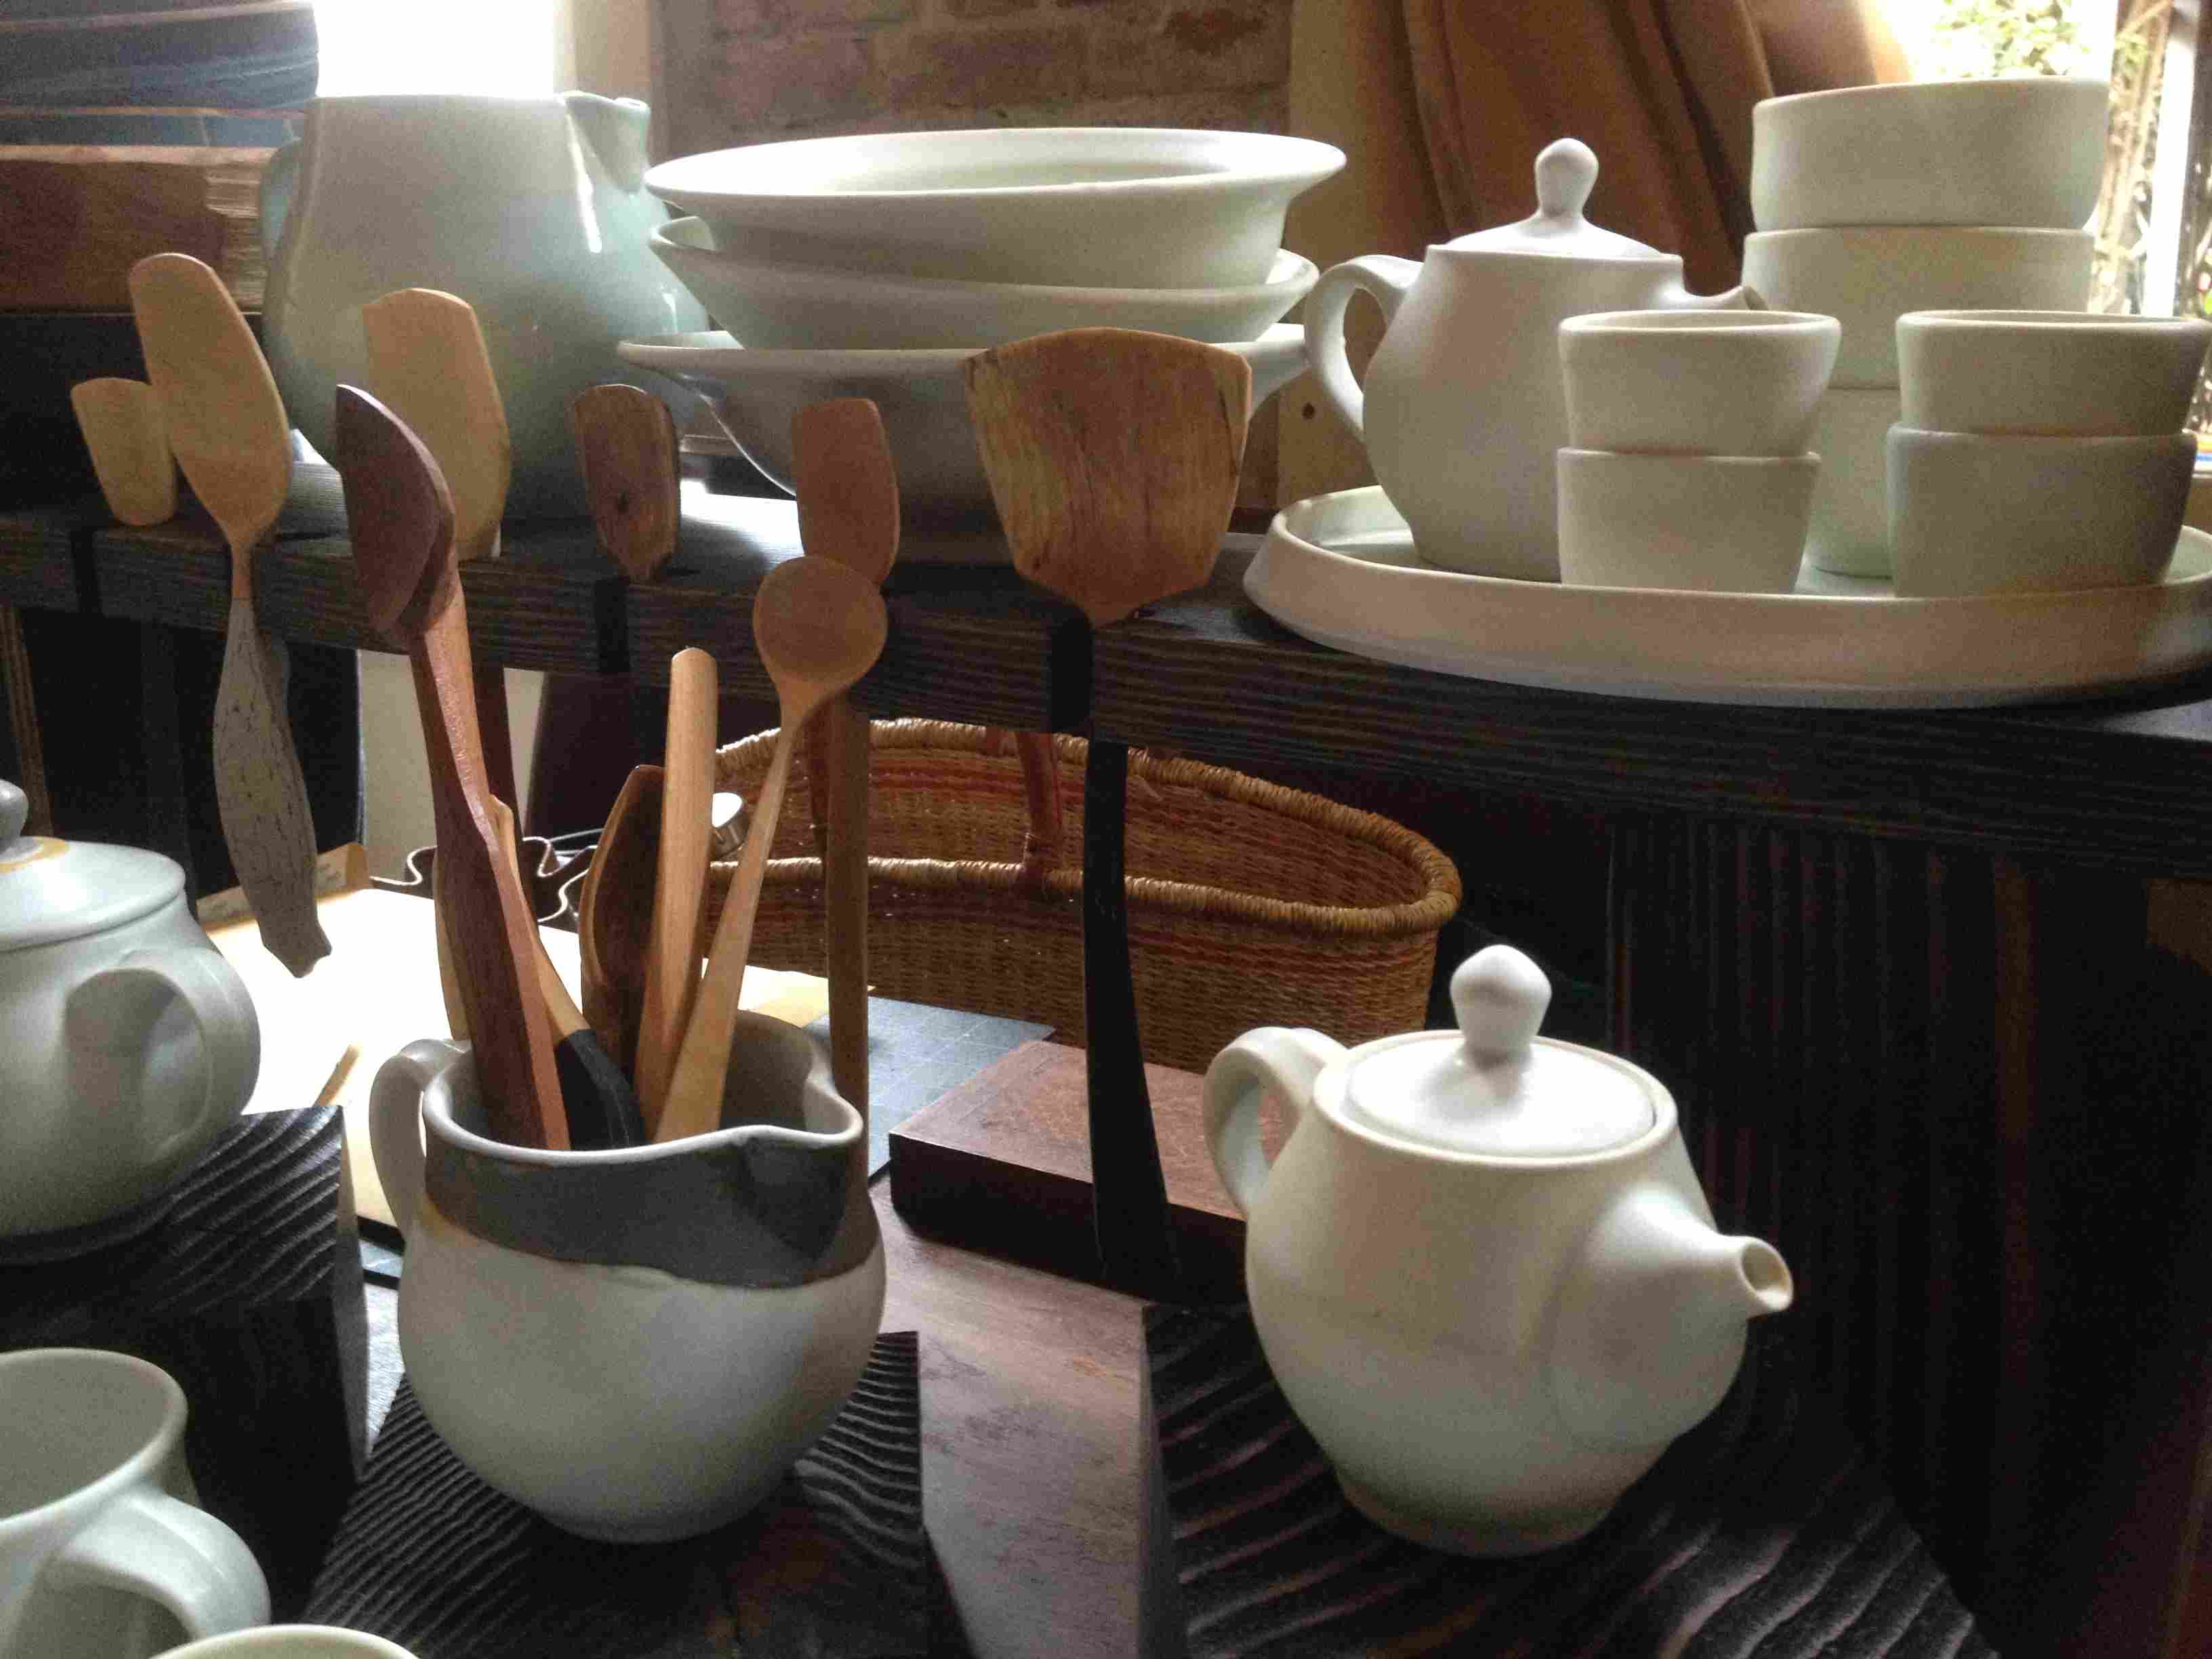 Hand carved wooden tools and handmade porcelain pottery are made in America by skilled crafters